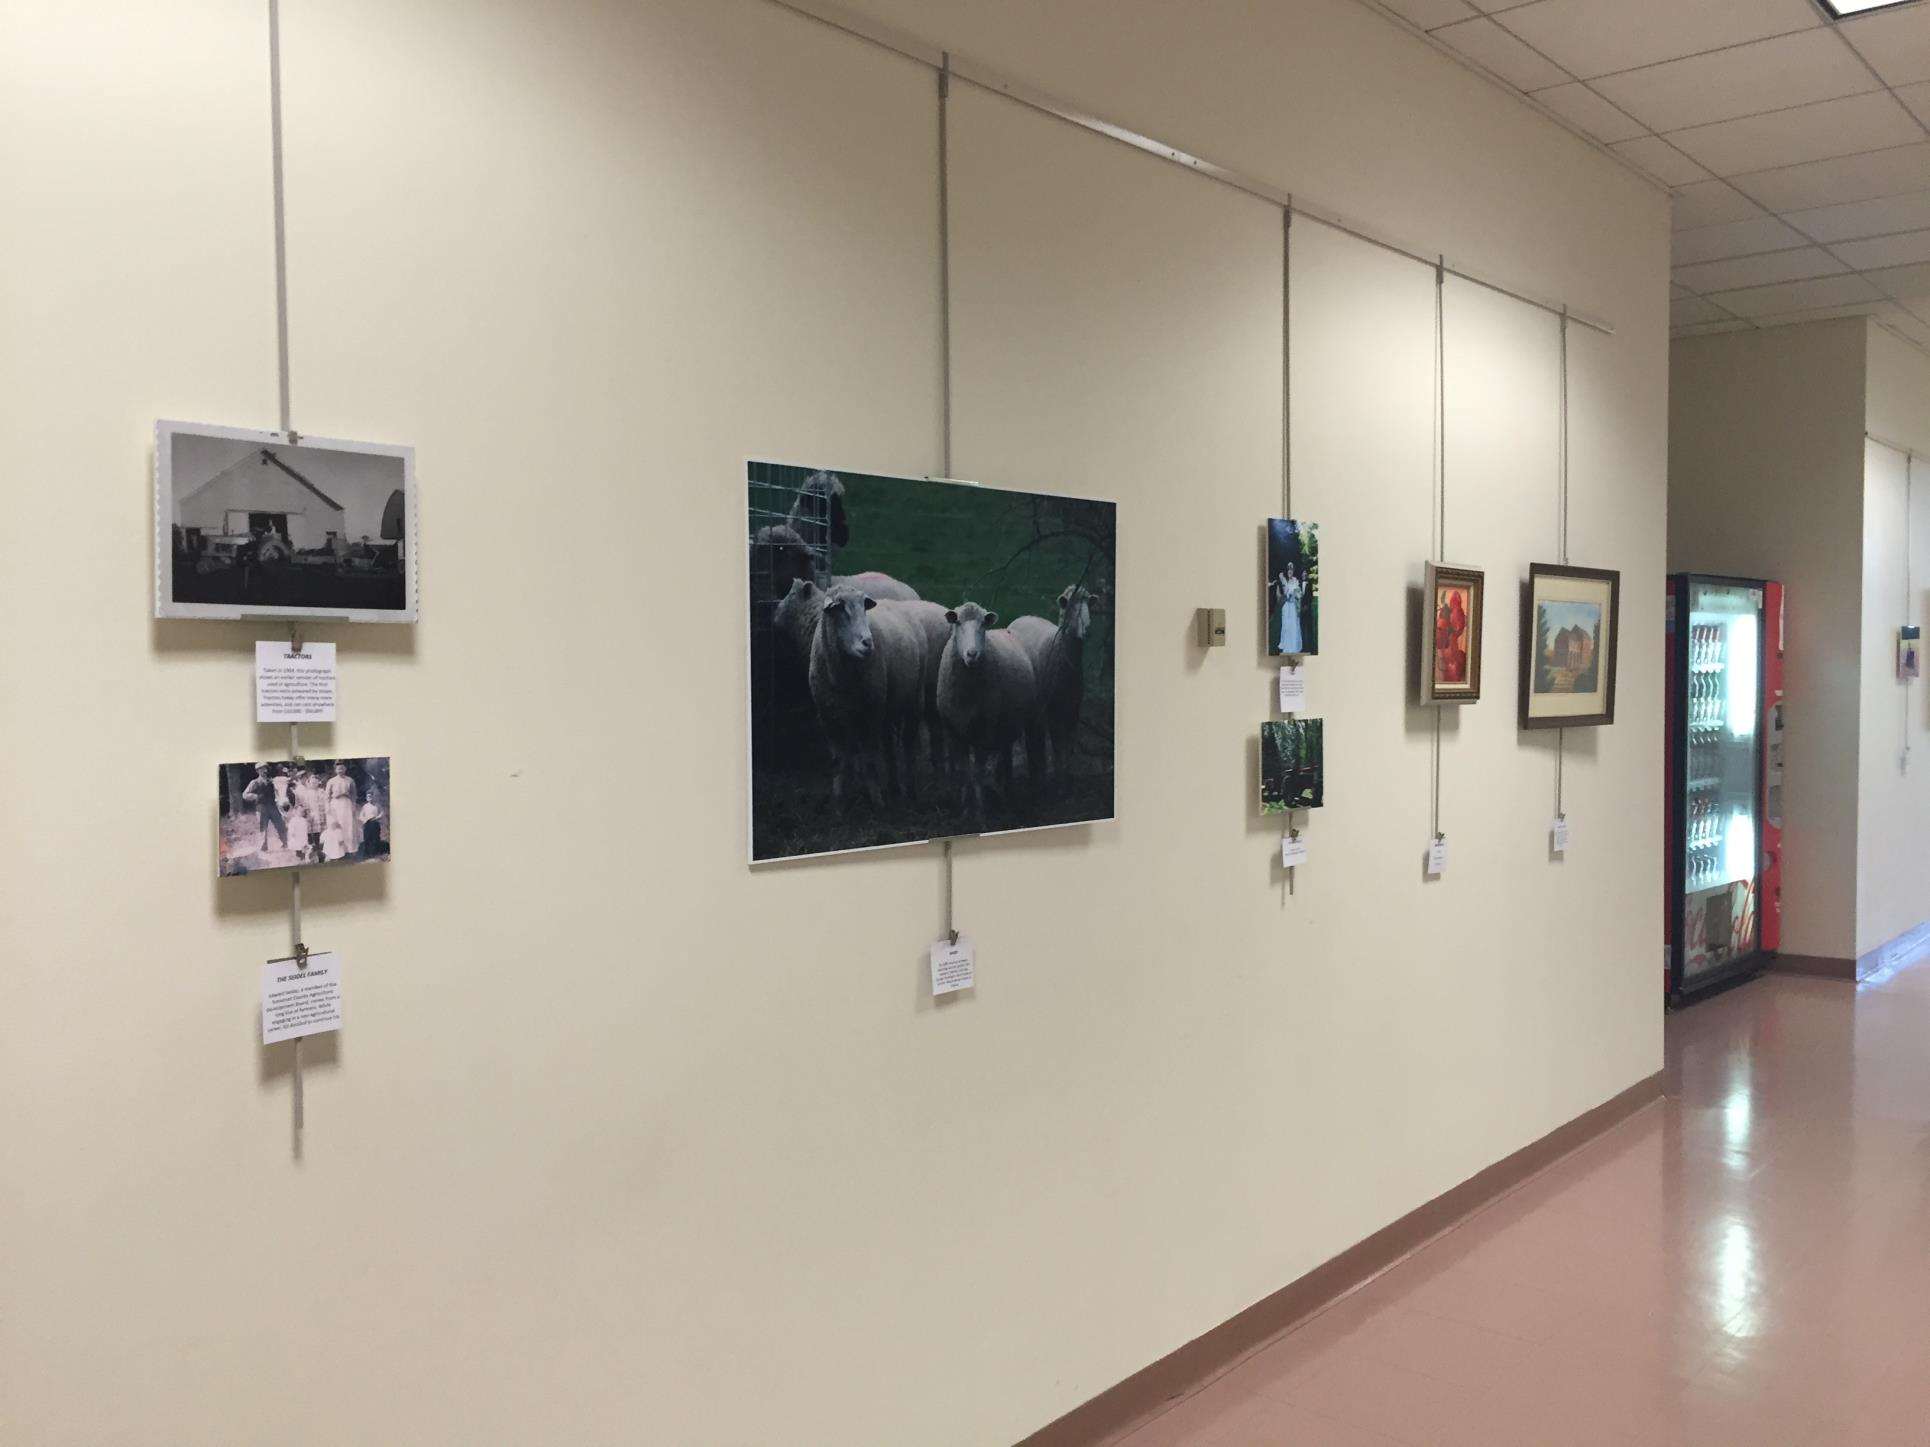 Gallery wall by conference room